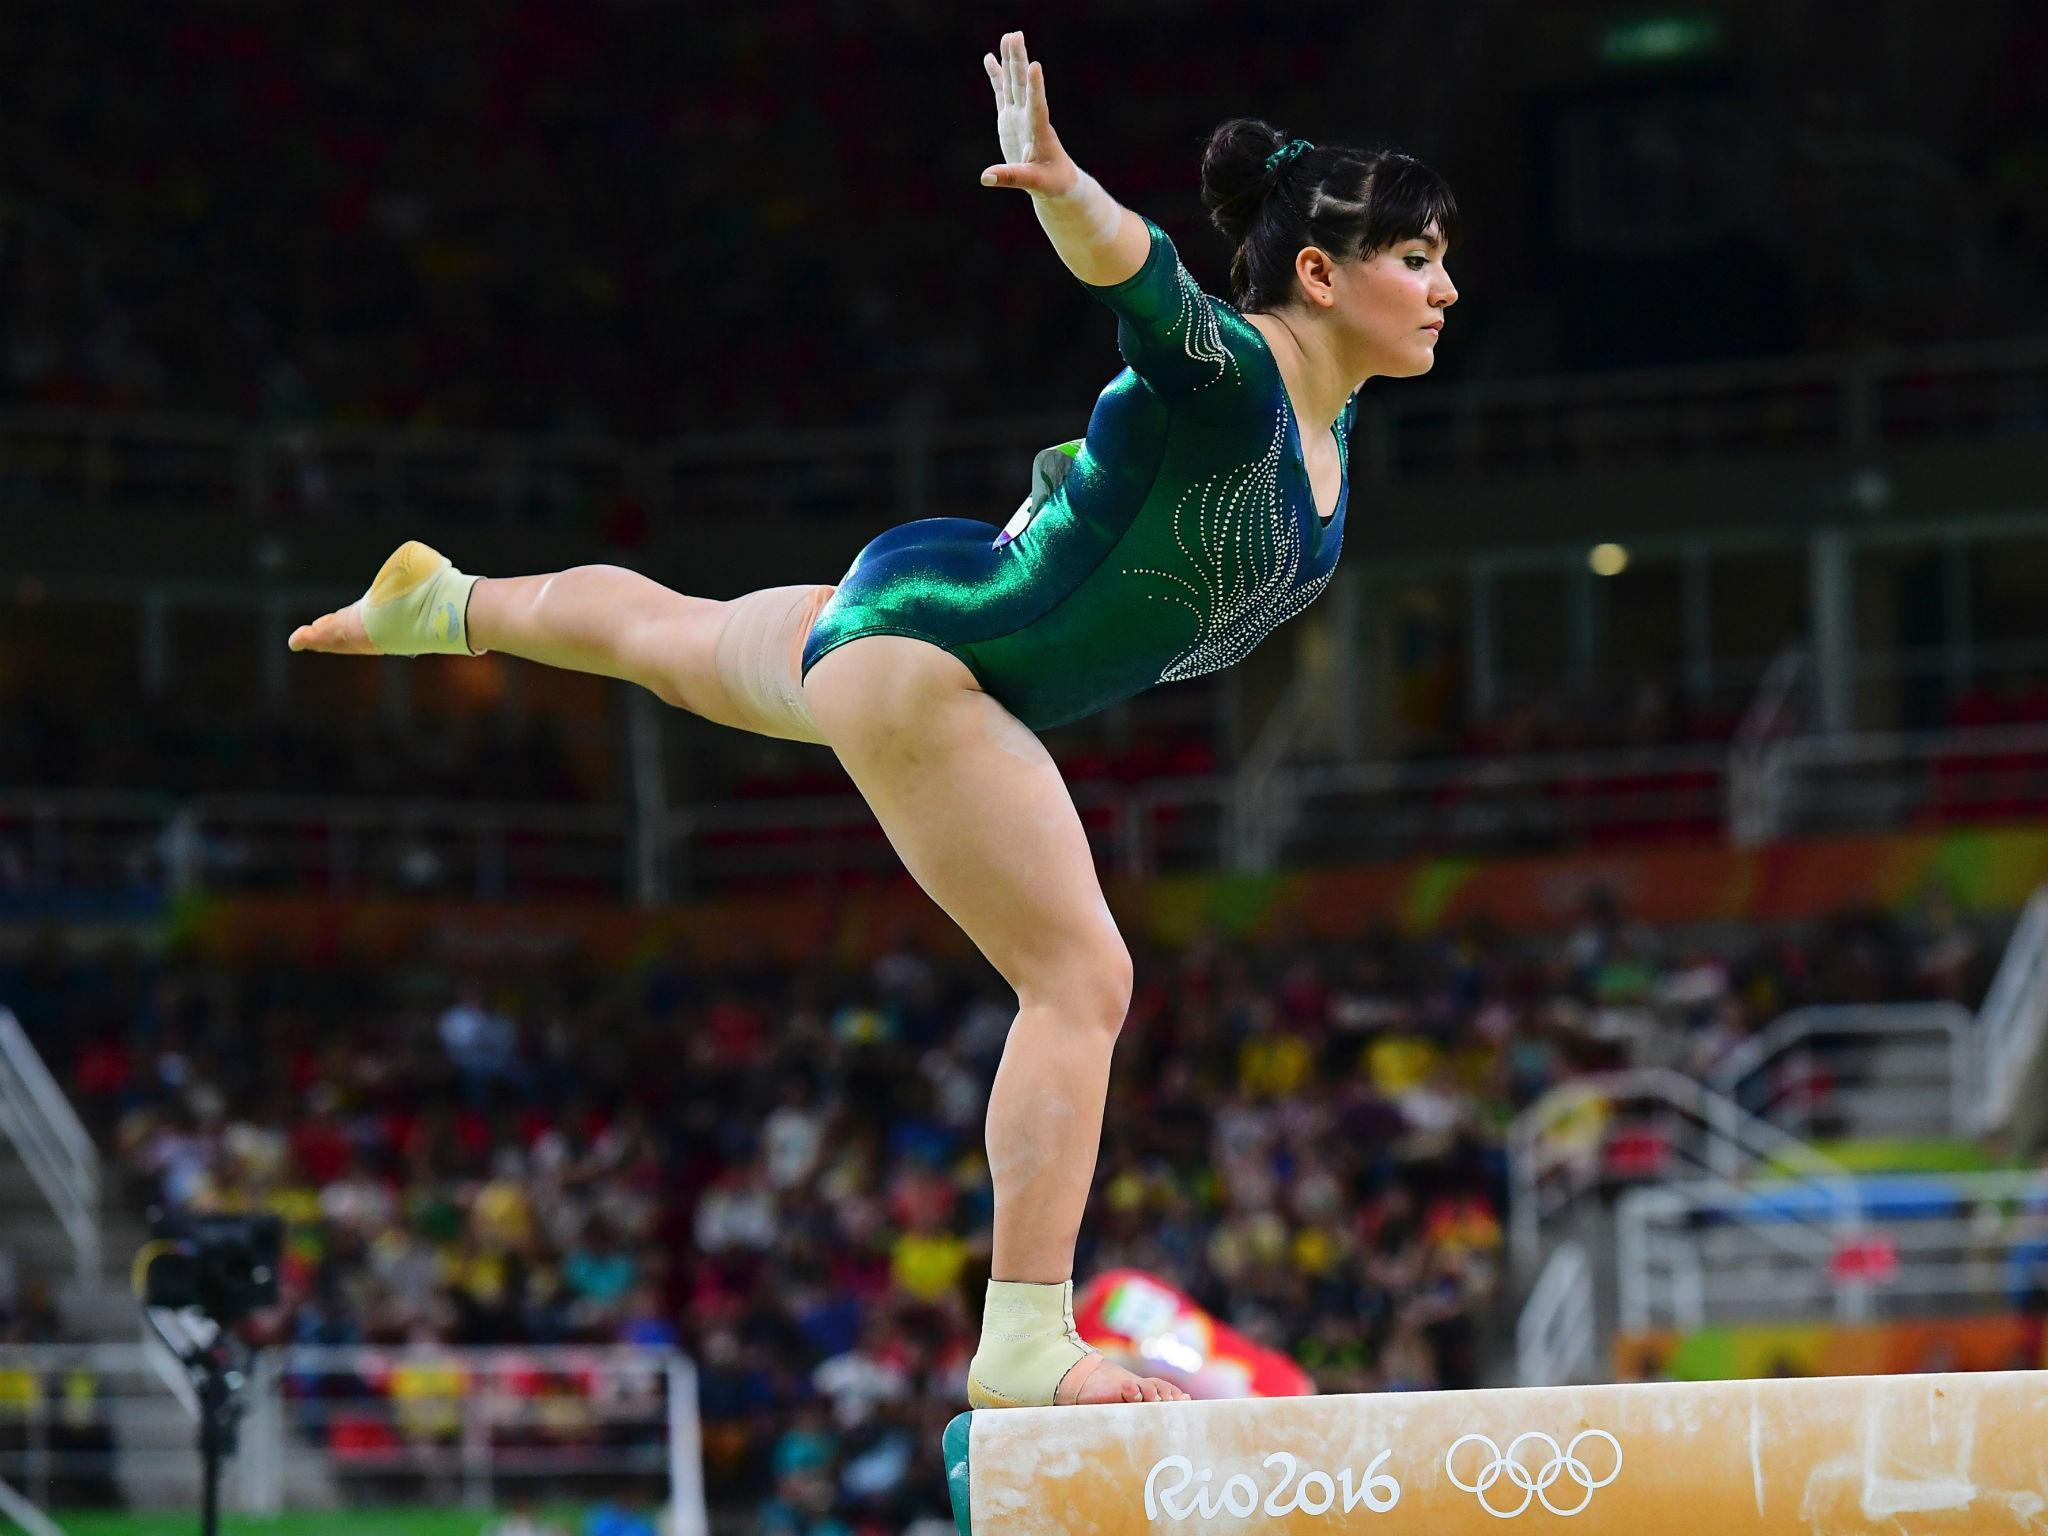 Rio 2016 Viewers Defend Mexican Gymnast Alexa Moreno From